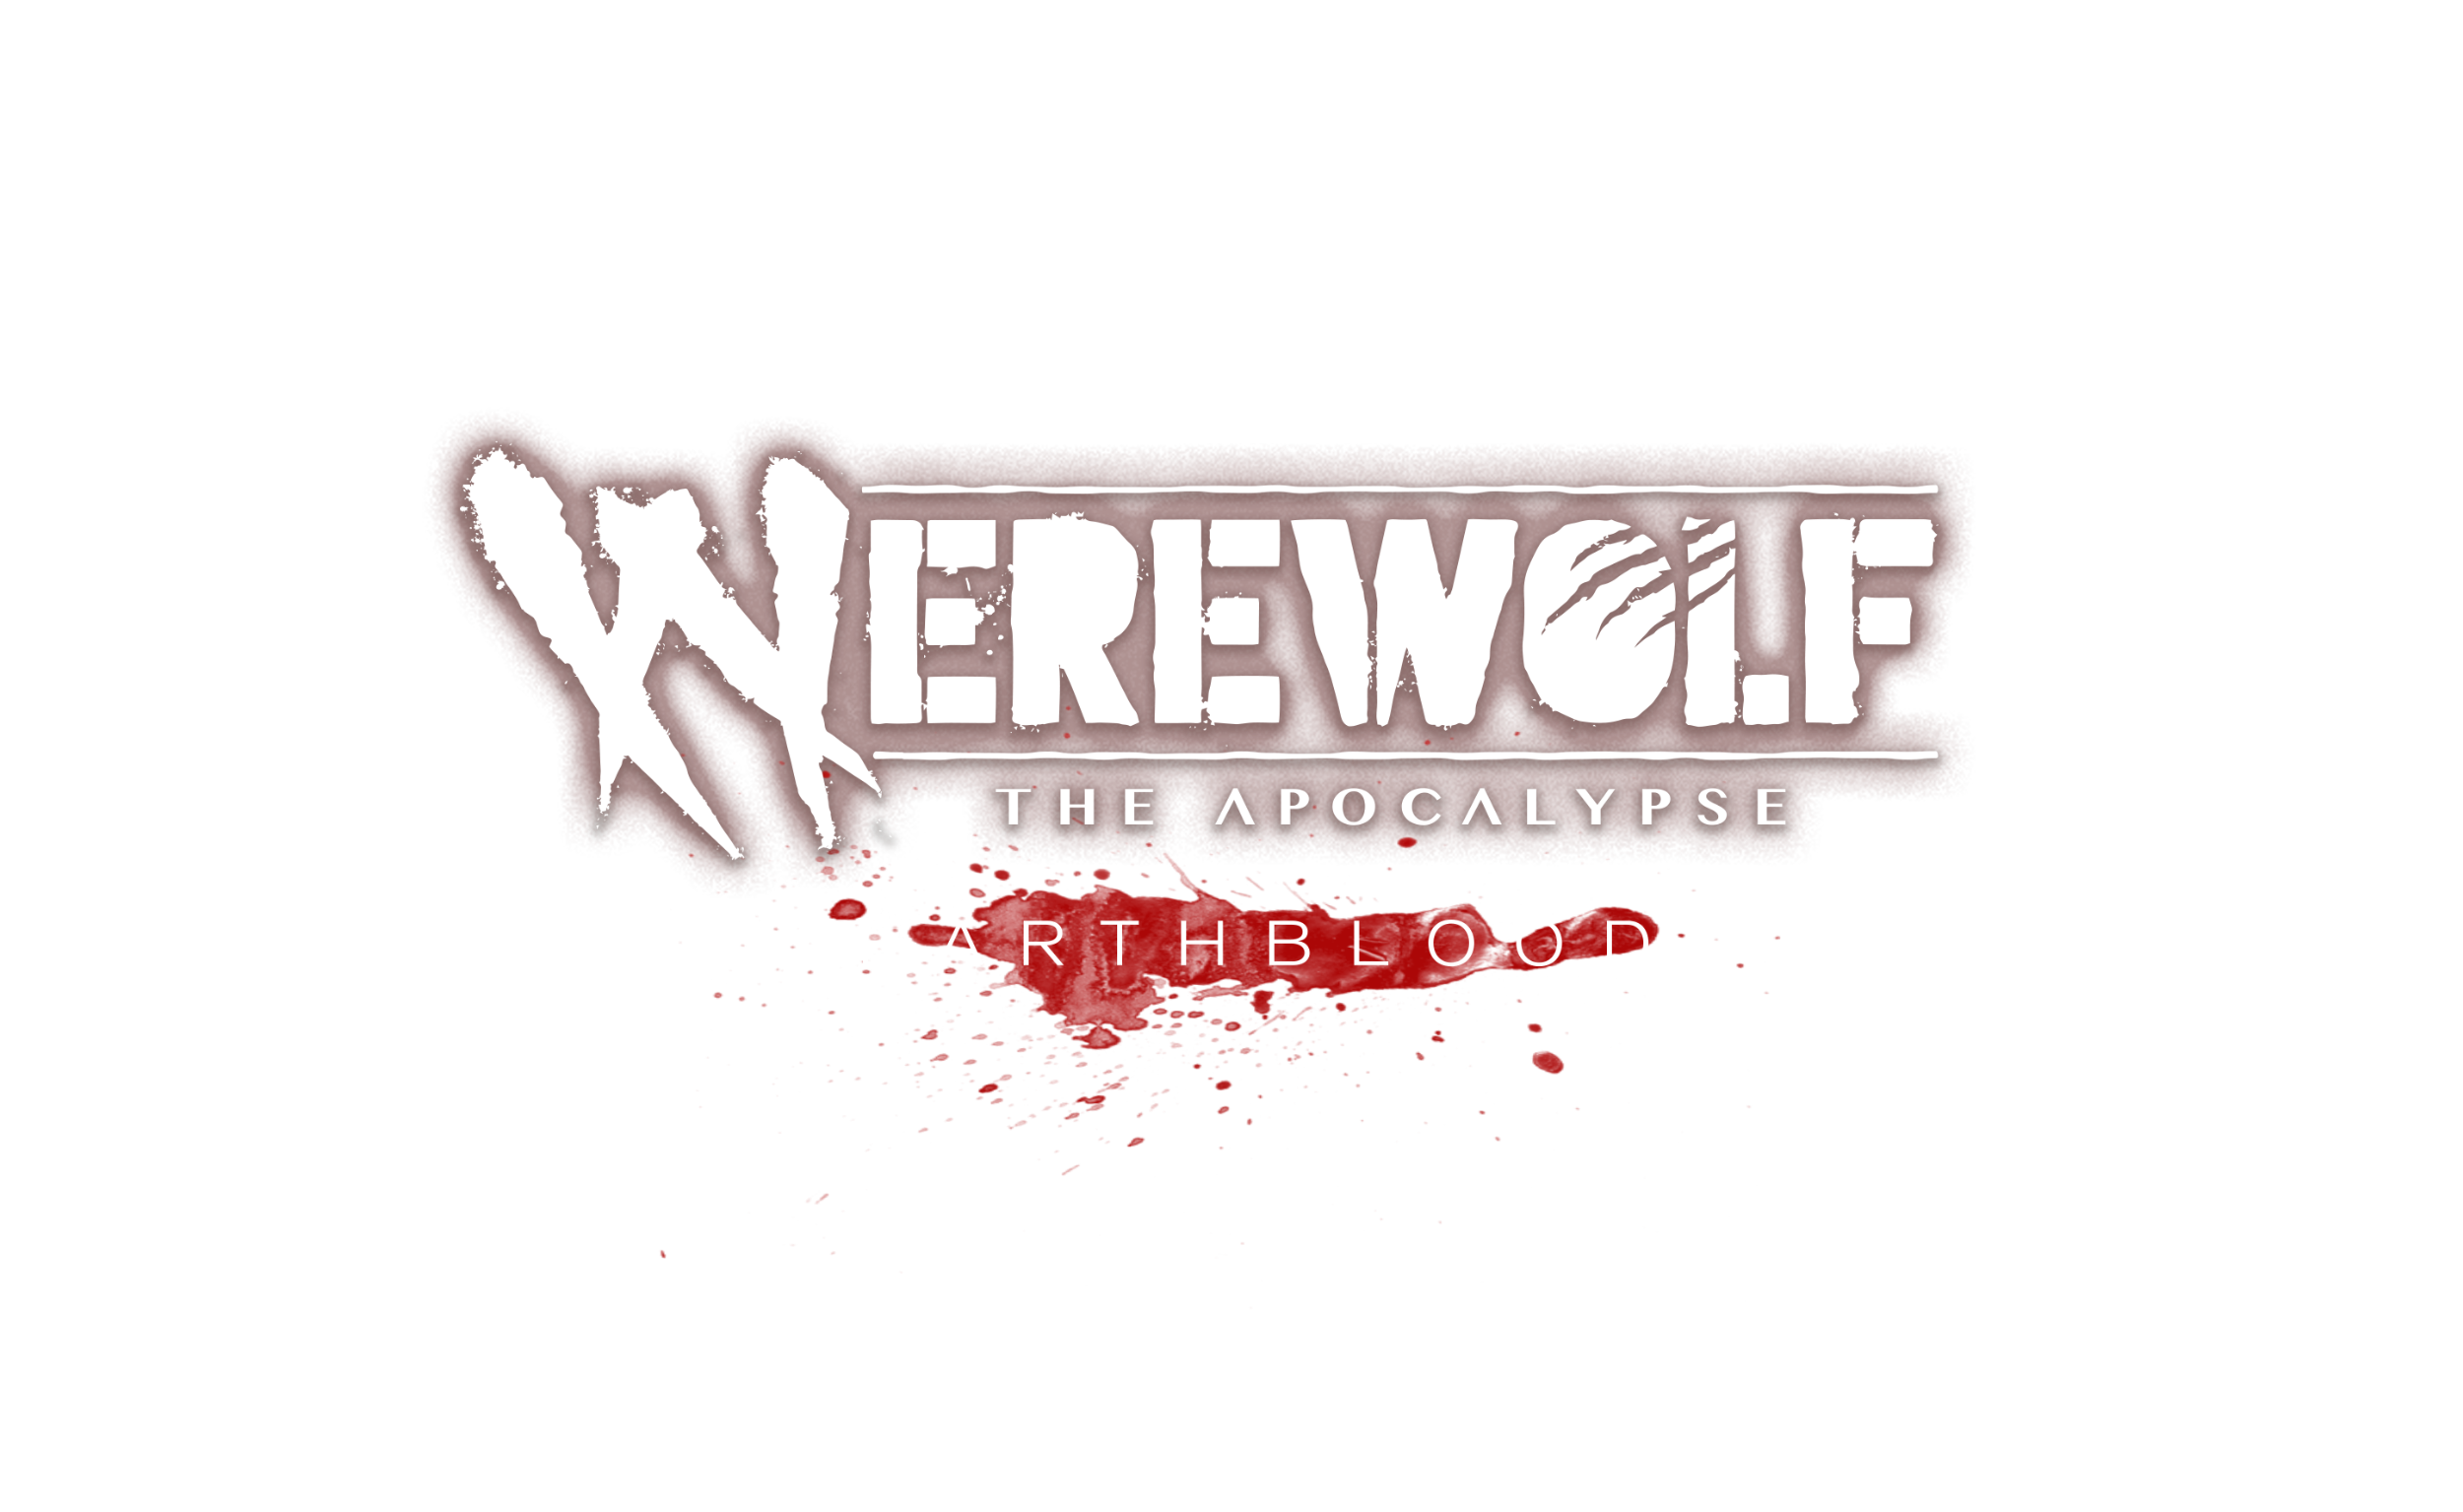 Werewolf-The-Apocalypse-Earthblood-codes-free-activation